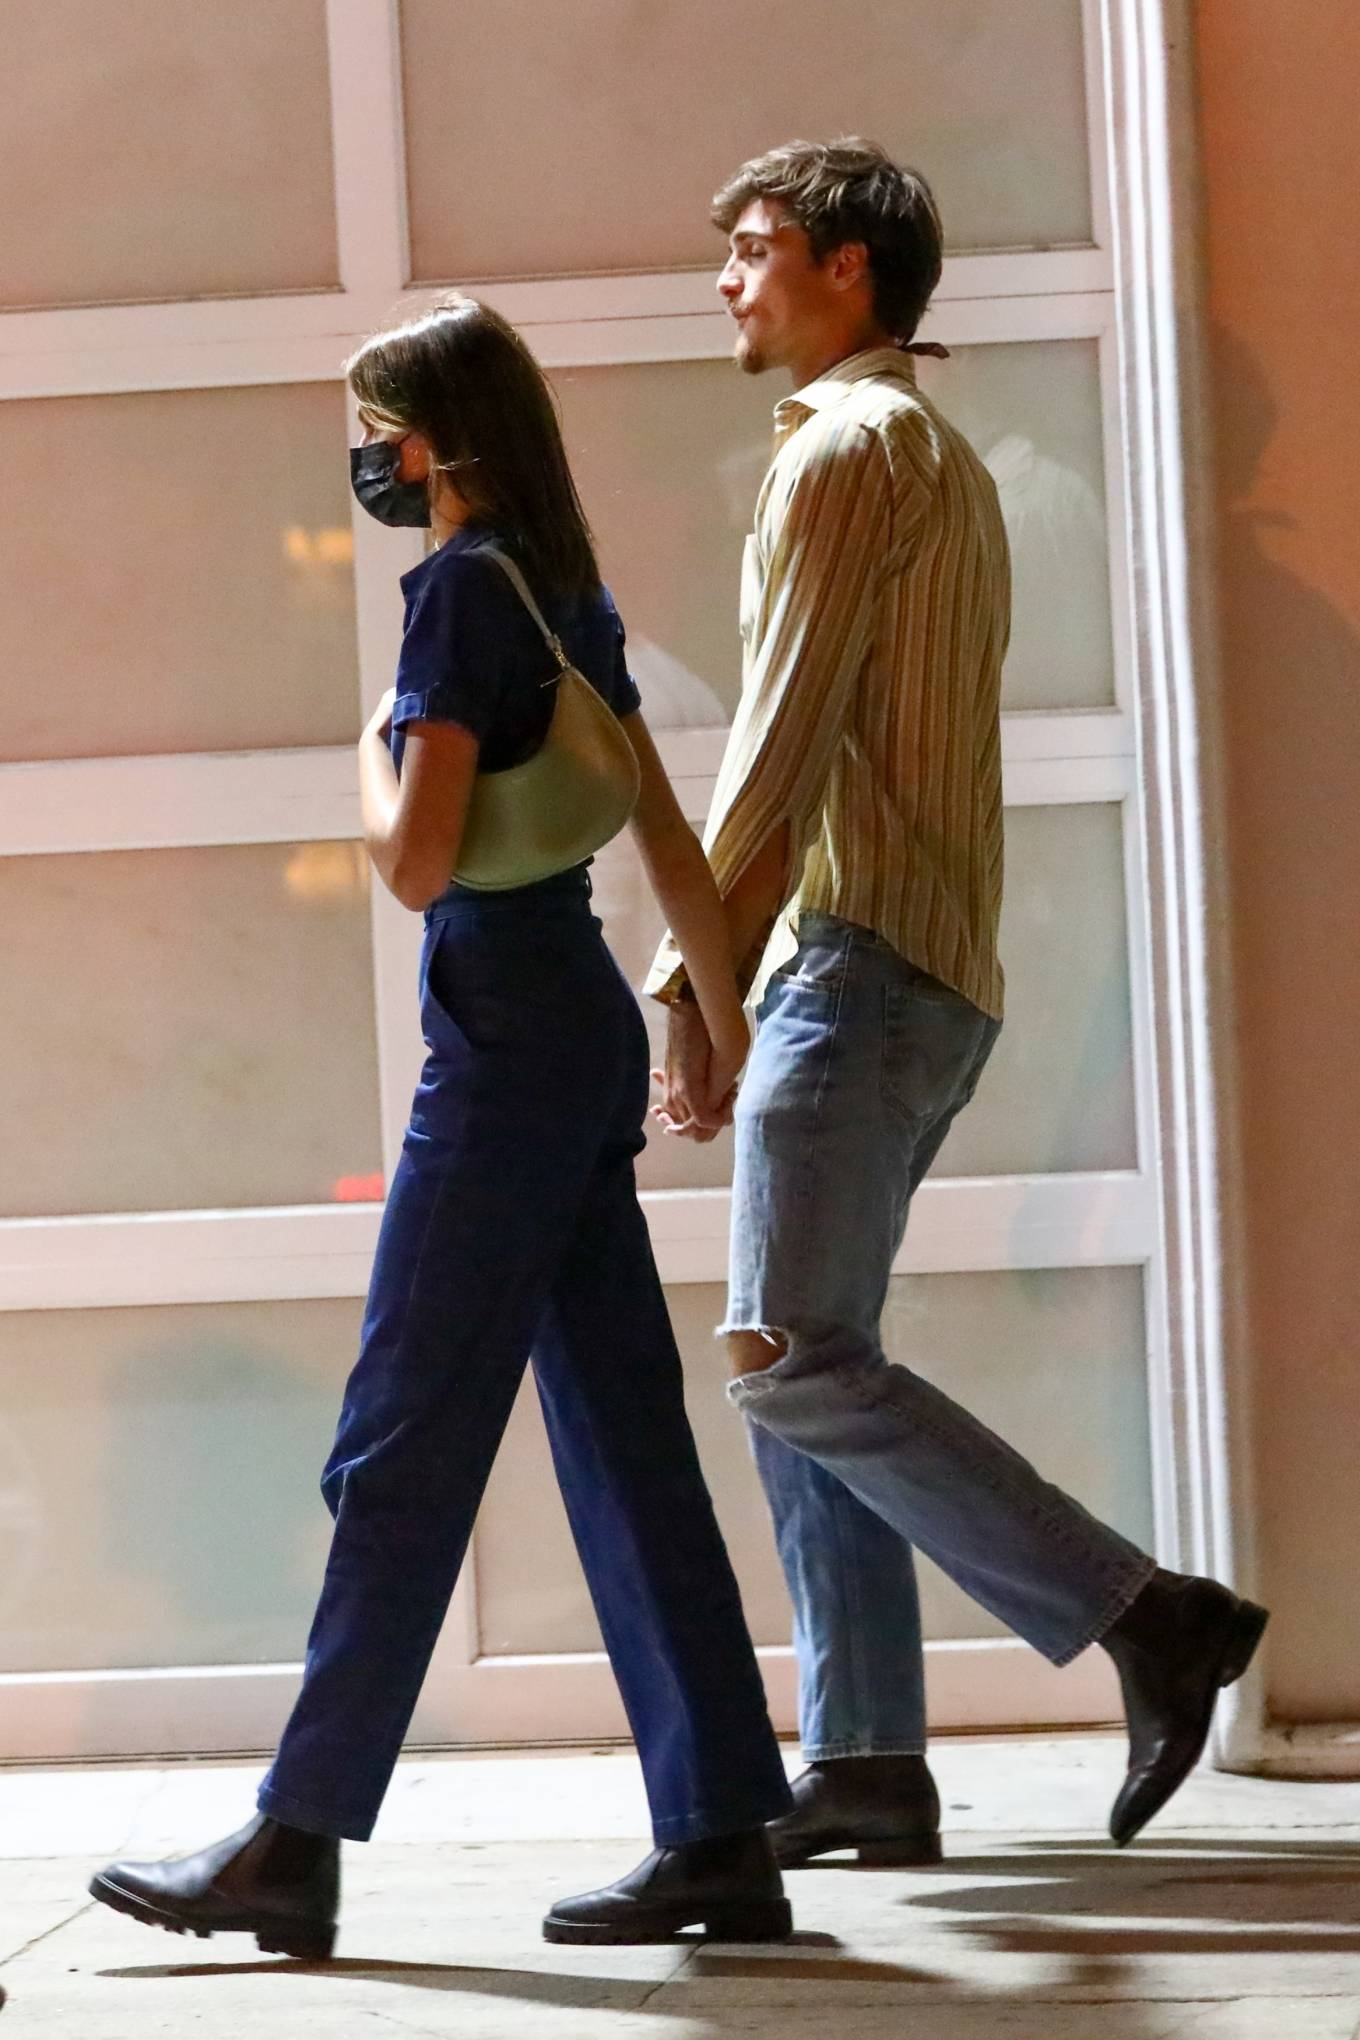 Kaia Gerber wearing a fitted navy blue jumpsuit with a denim material, short sleeves, shirt collar and side pockets